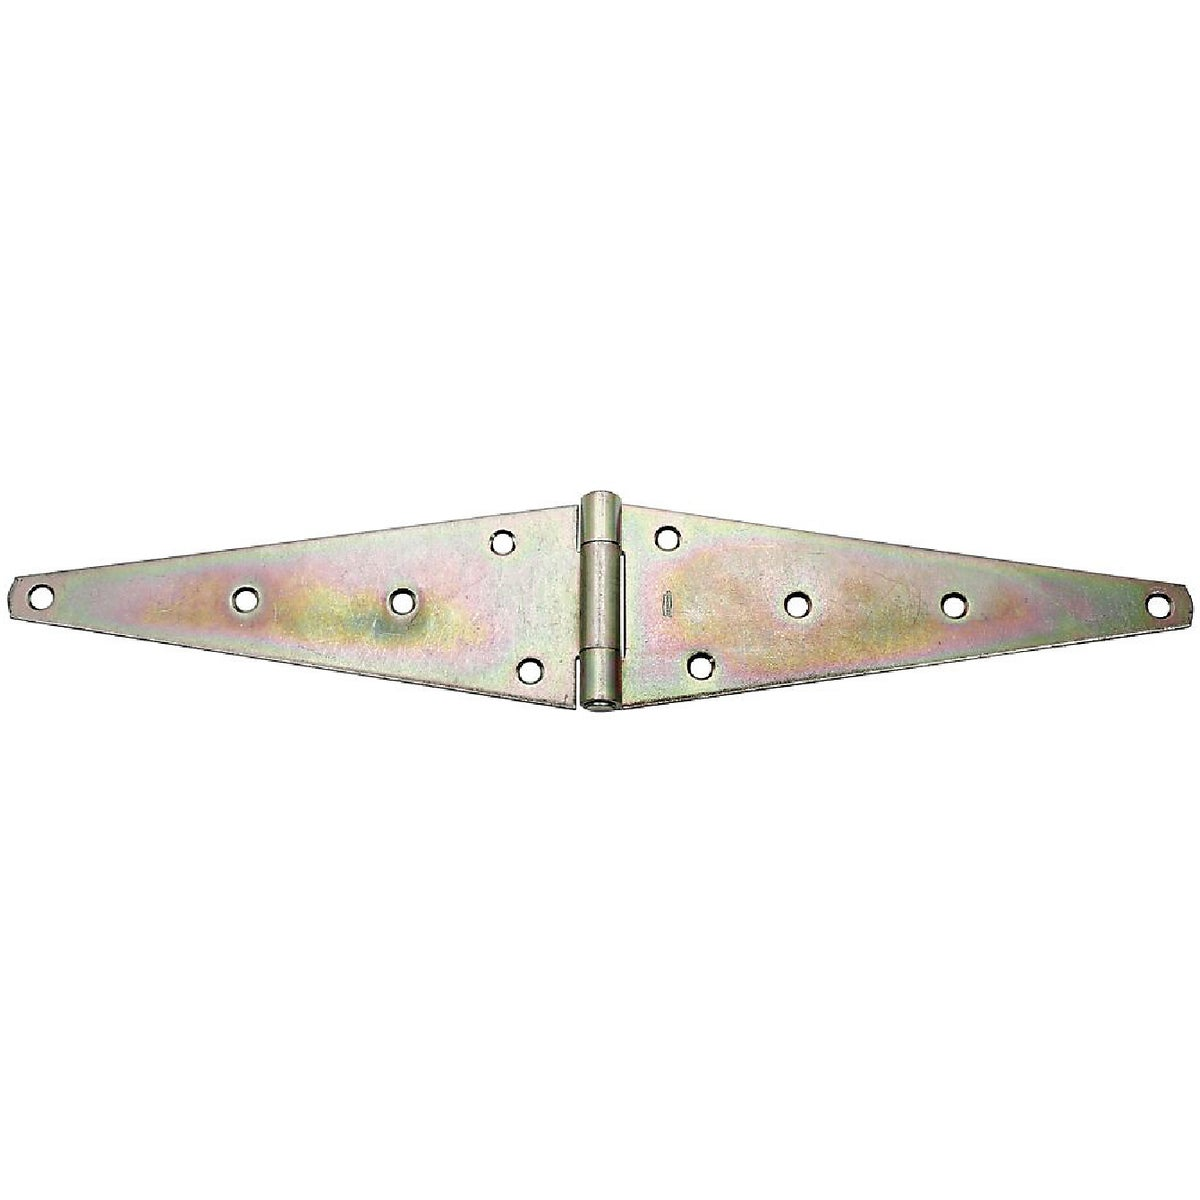 "12"" HEAVY STRAP HINGE - N127910 by National Mfg Co"